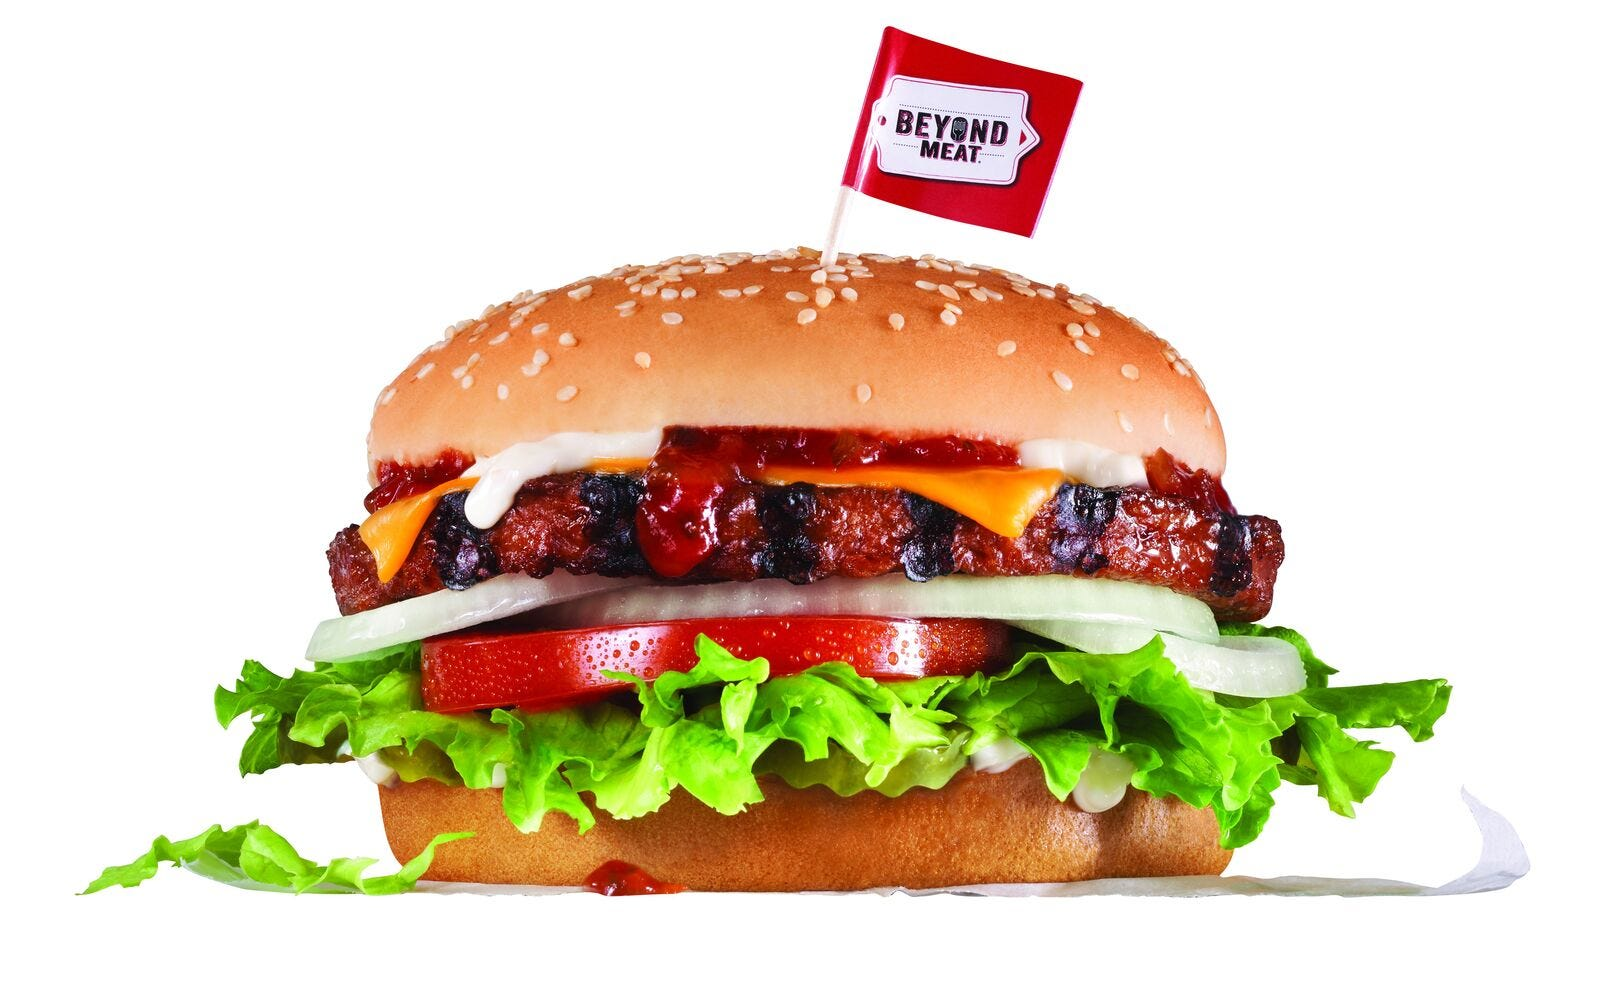 graphic relating to Carls Jr Coupons Printable known as Absolutely free meals for Further than Working day: Get hold of totally free Outside of Meat at